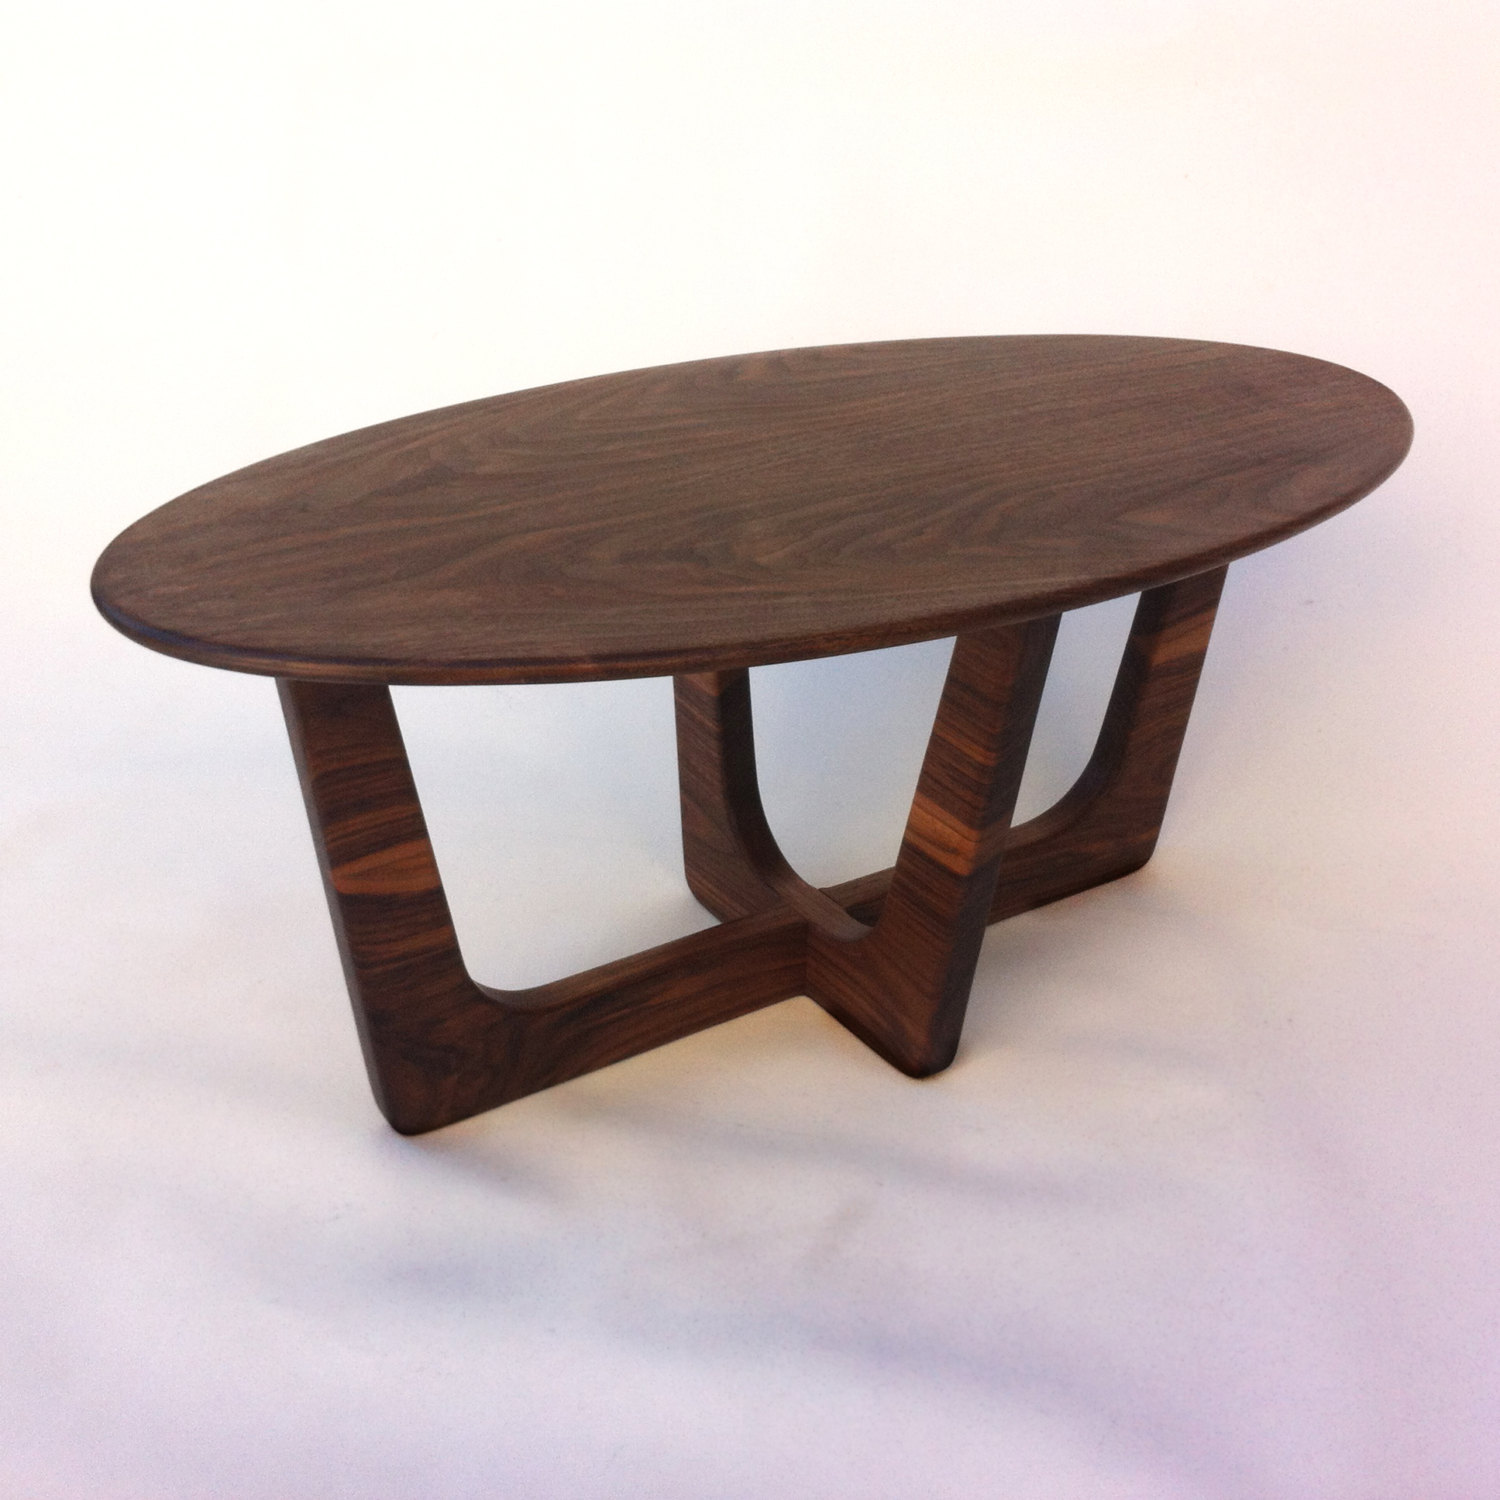 Mid Century Modern Oval Coffee Table 20—40 Adrian Pearsall